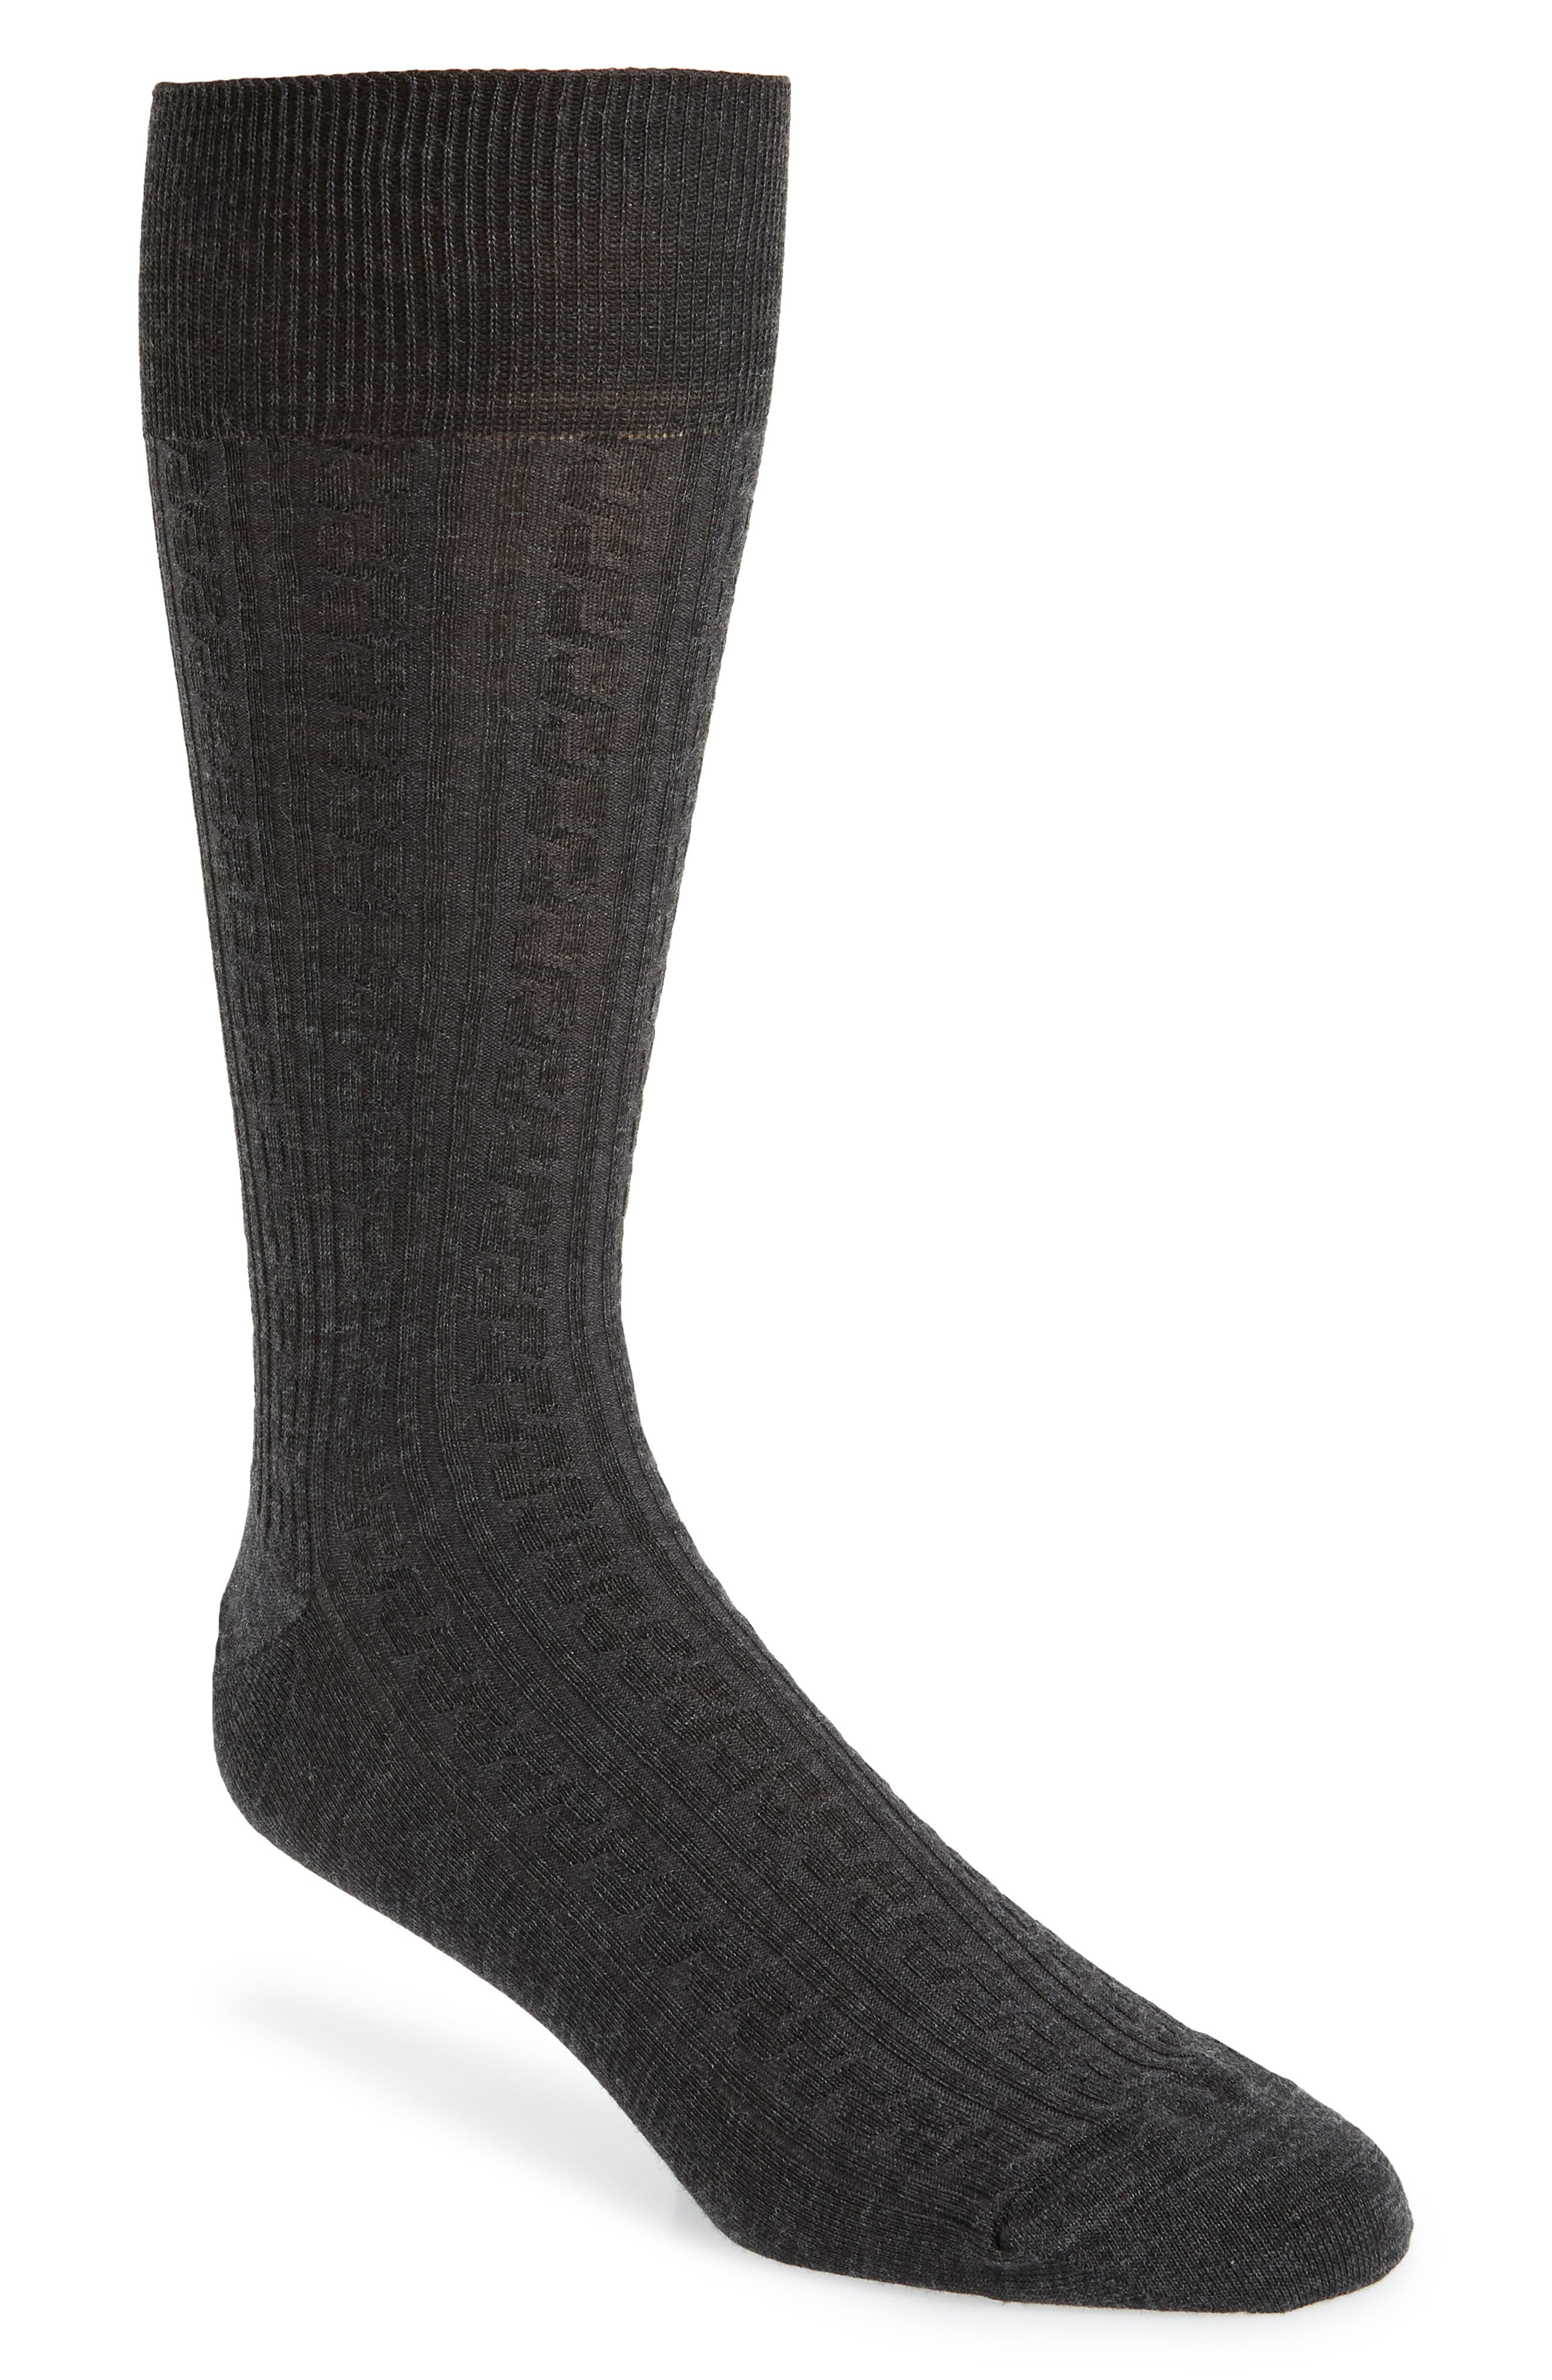 Cable Knit Merino Blend Socks,                         Main,                         color, CHARCOAL HEATHER